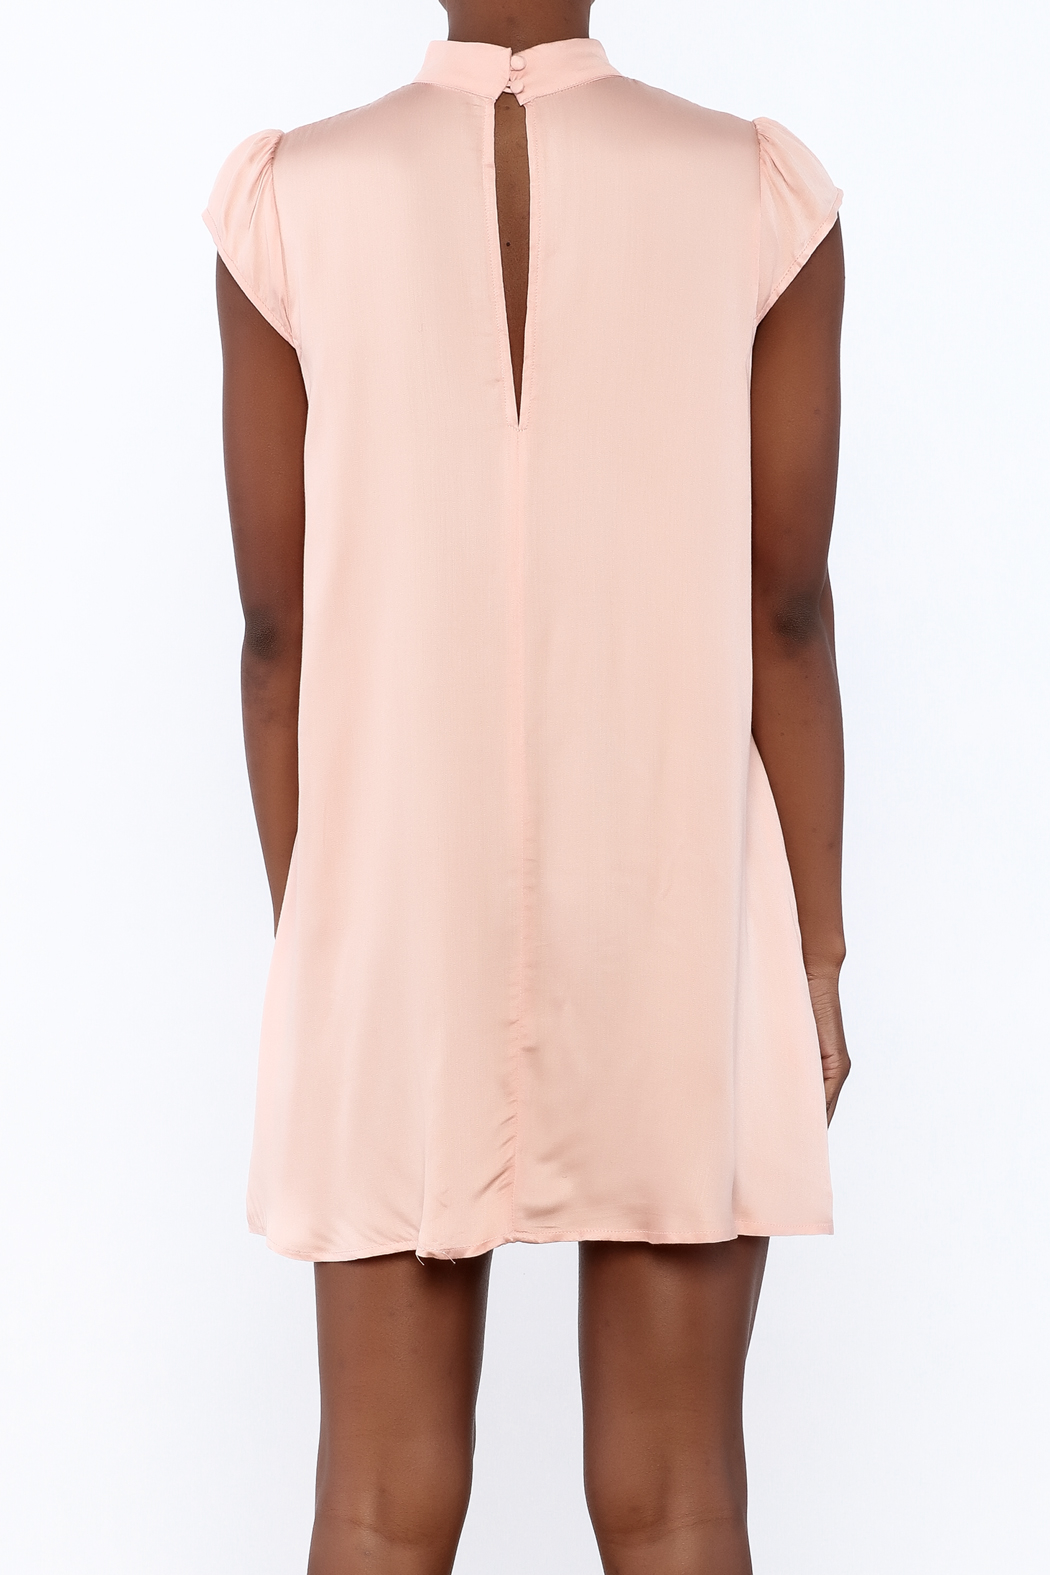 Cotton Candy Lucky Peach Dress - Back Cropped Image